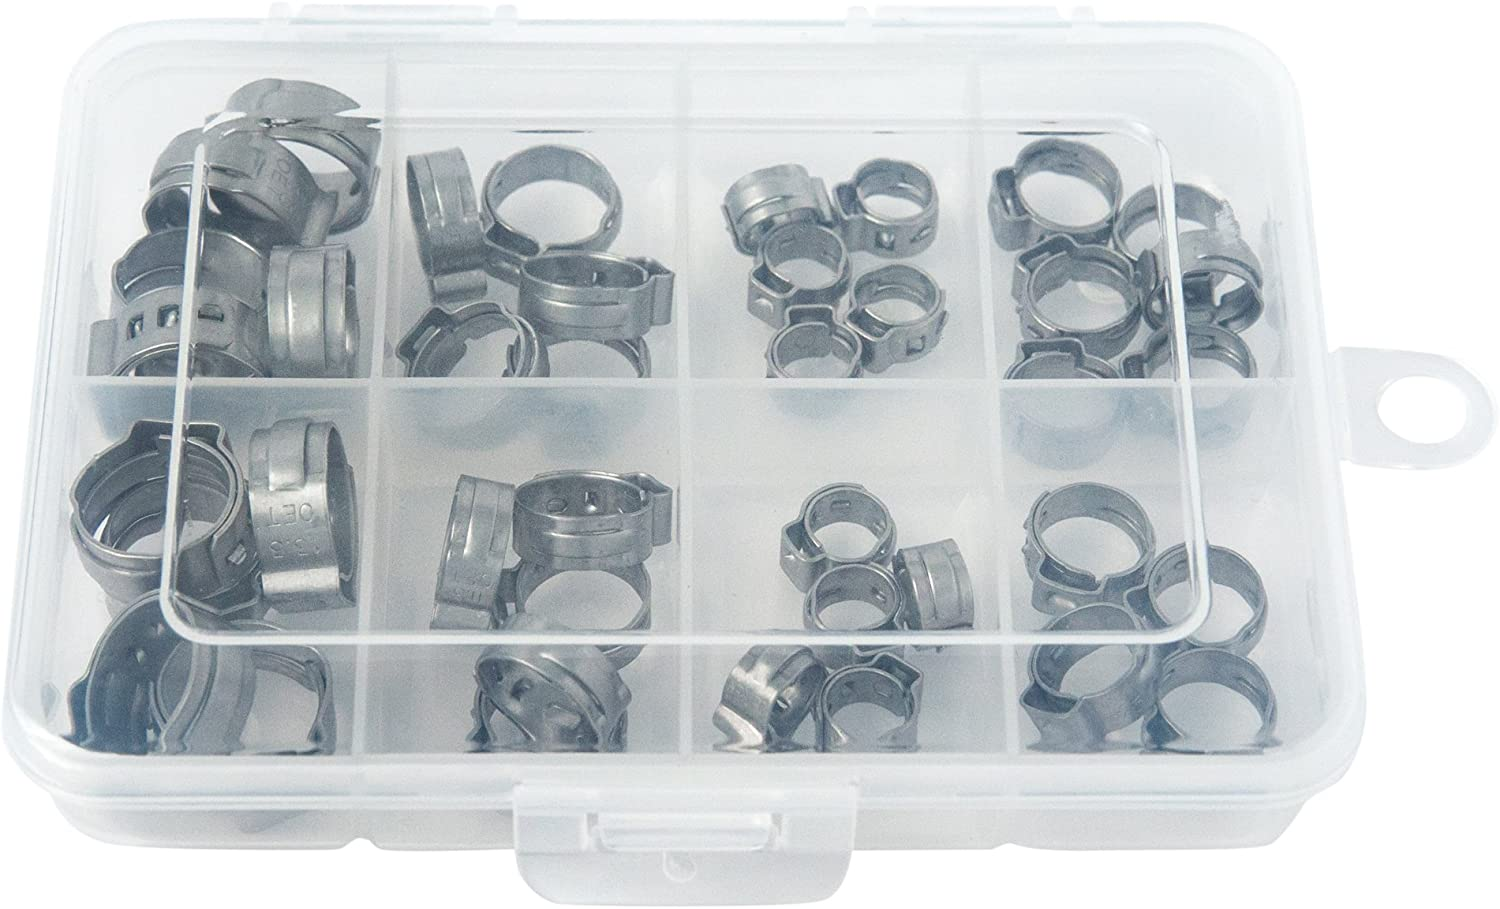 OCSParts OET070133-40PCK Oetiker StepLess Clamp Kit 40 Clamps Covering an Inner Diameter Clamp Range of 7 mm to 13.3 mm